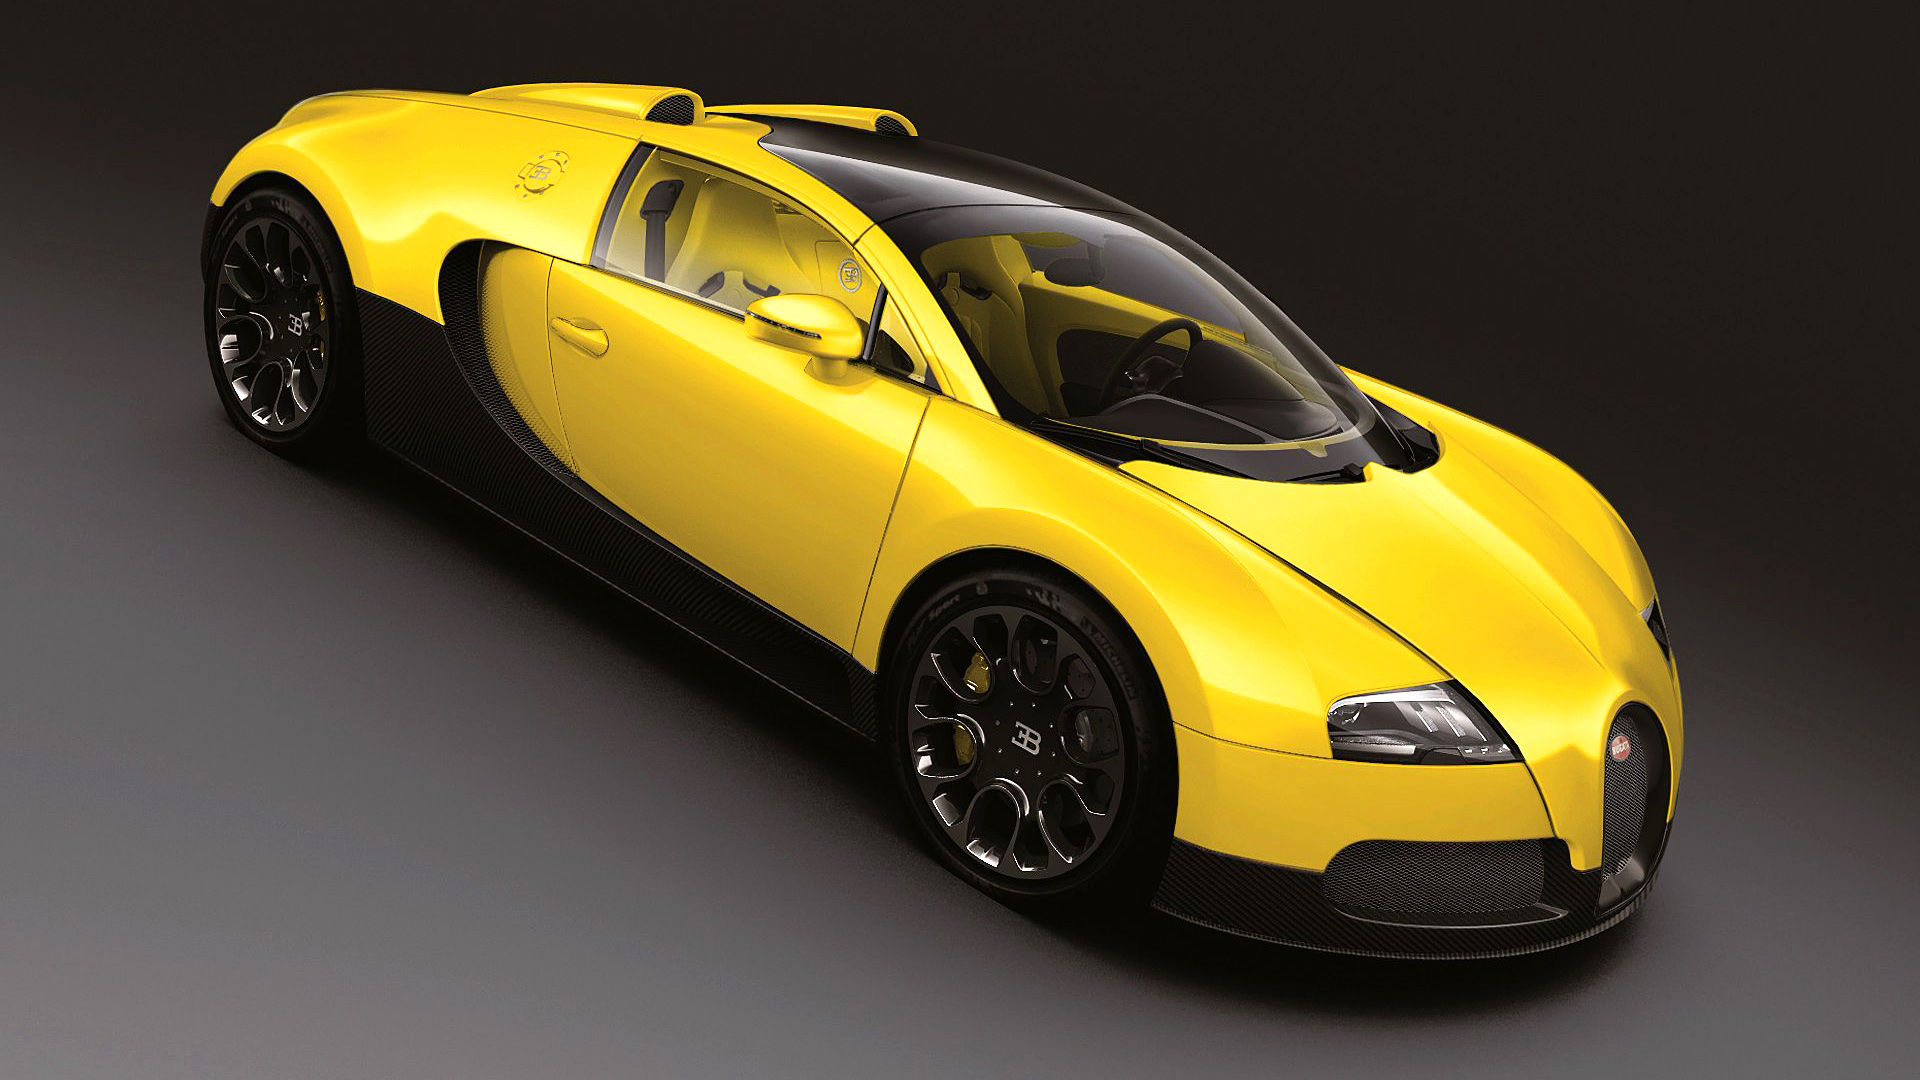 2011 Bugatti Veyron Grand Sport Limited Edition